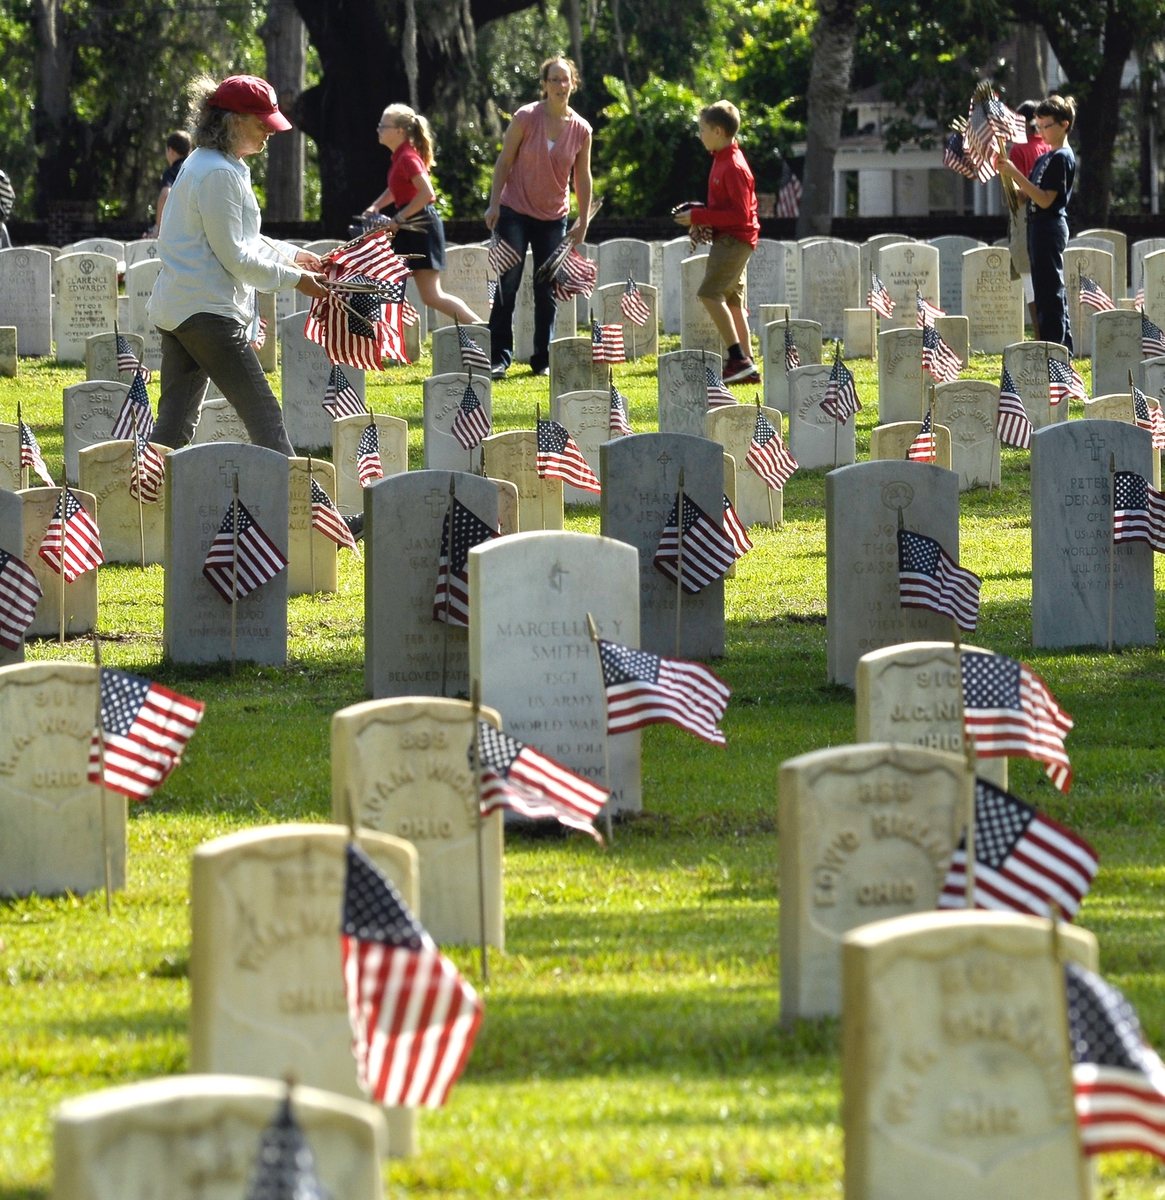 Barbara Pinto-Maurer, above, places American flags on some of the more than 19,000 head stones on May 25. Hundreds of area school children helped place flags on the more than 19,000 headstones in preparation for Monday's annual Memorial Day Ceremony. Photo by Bob Sofaly.